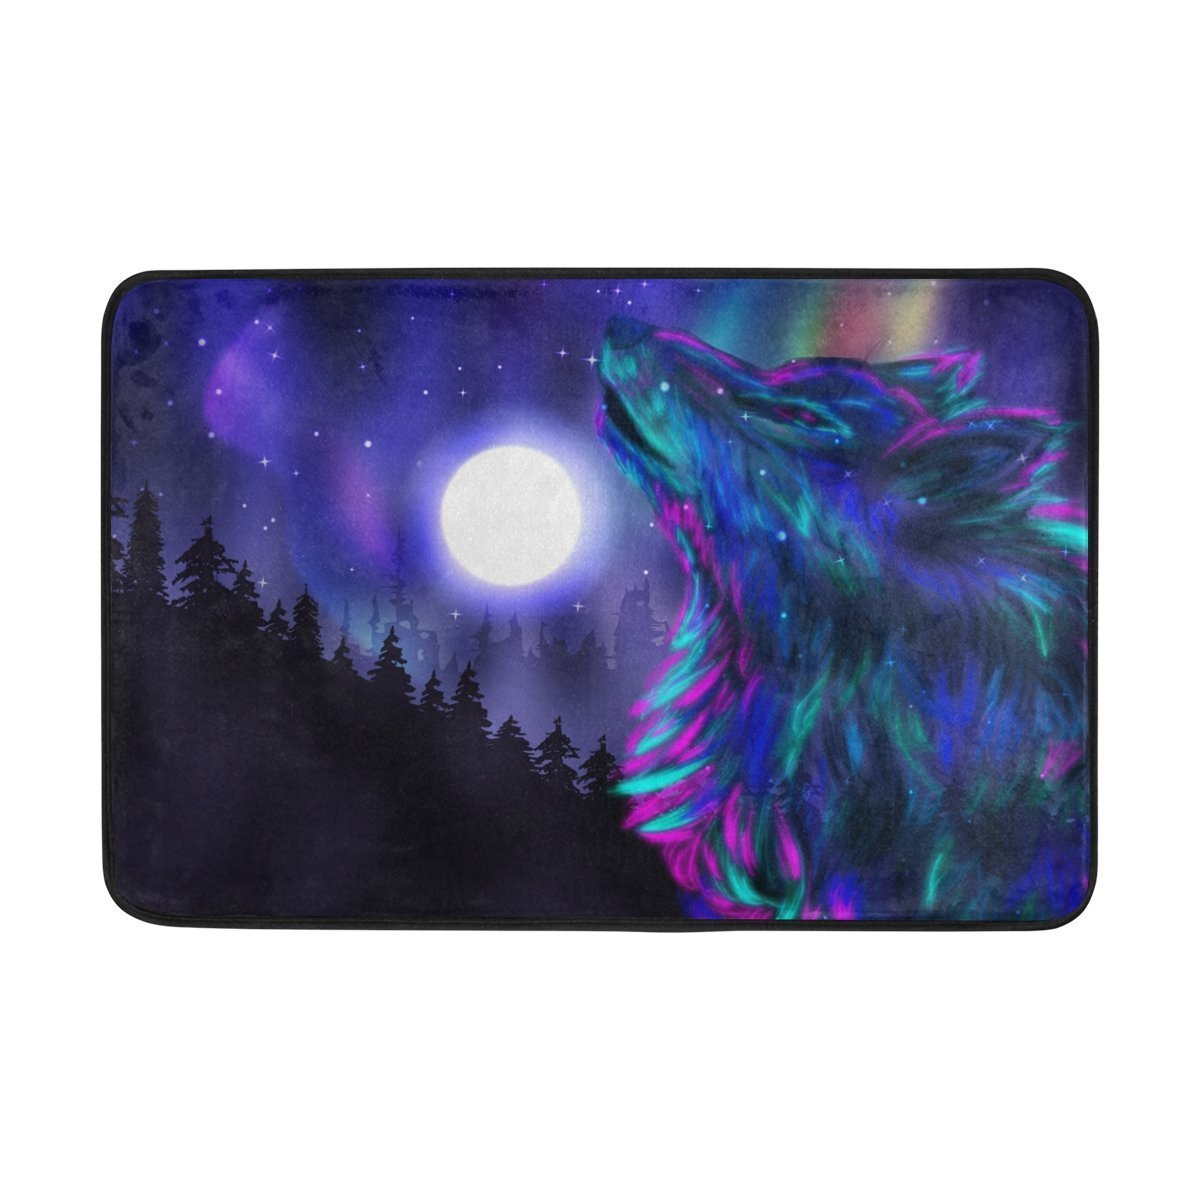 BAIHUISHOP Tree Wolf Moon Night 3-Piece Bathroom Set, Machine Washable for Everyday Use,Includes 60x72 Inch Waterproof Shower Curtain, 12 Shower Hooks and 1 Non-slip Bathroom Rug Carpet - Set of 3 by baihuishop (Image #5)